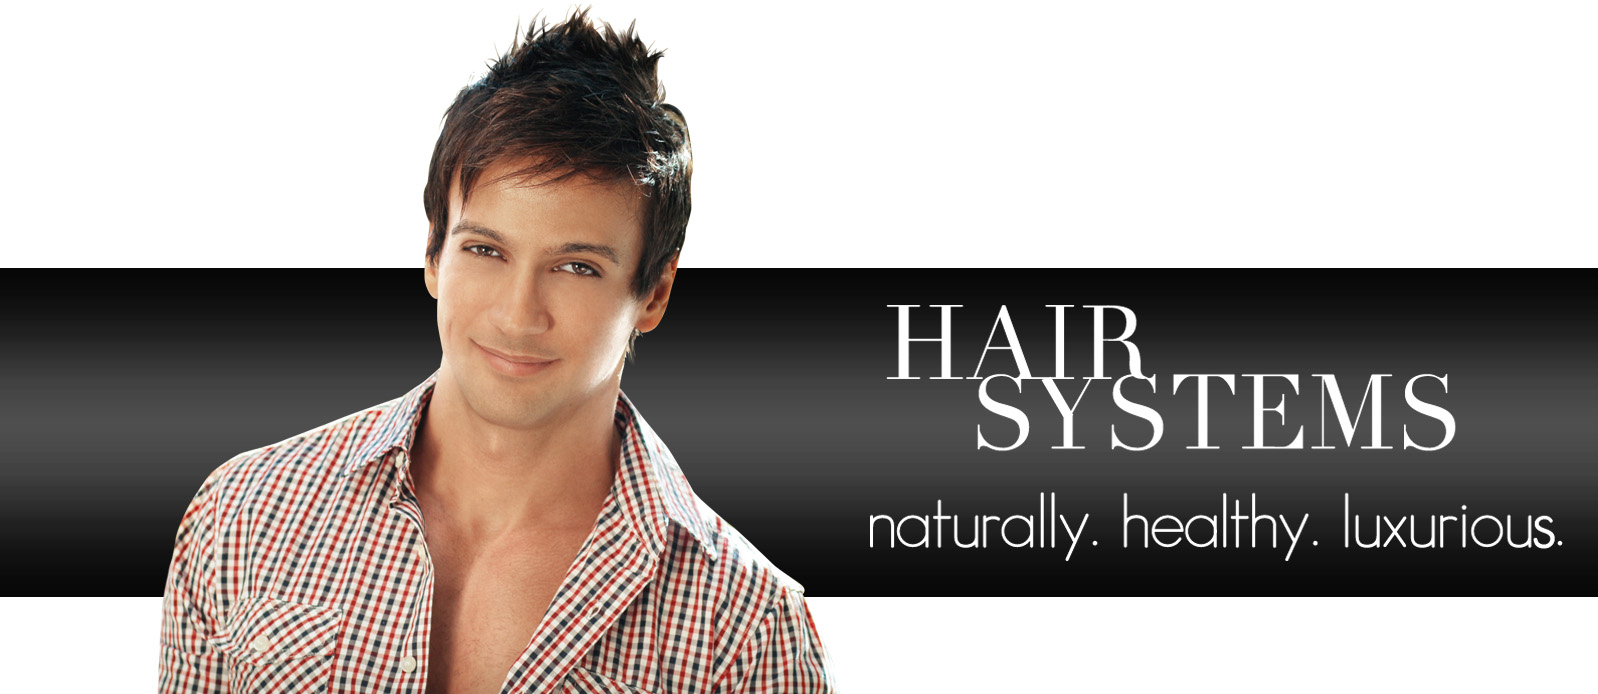 hair system, toupee, wig, baldness cure, hairstyle for bald men